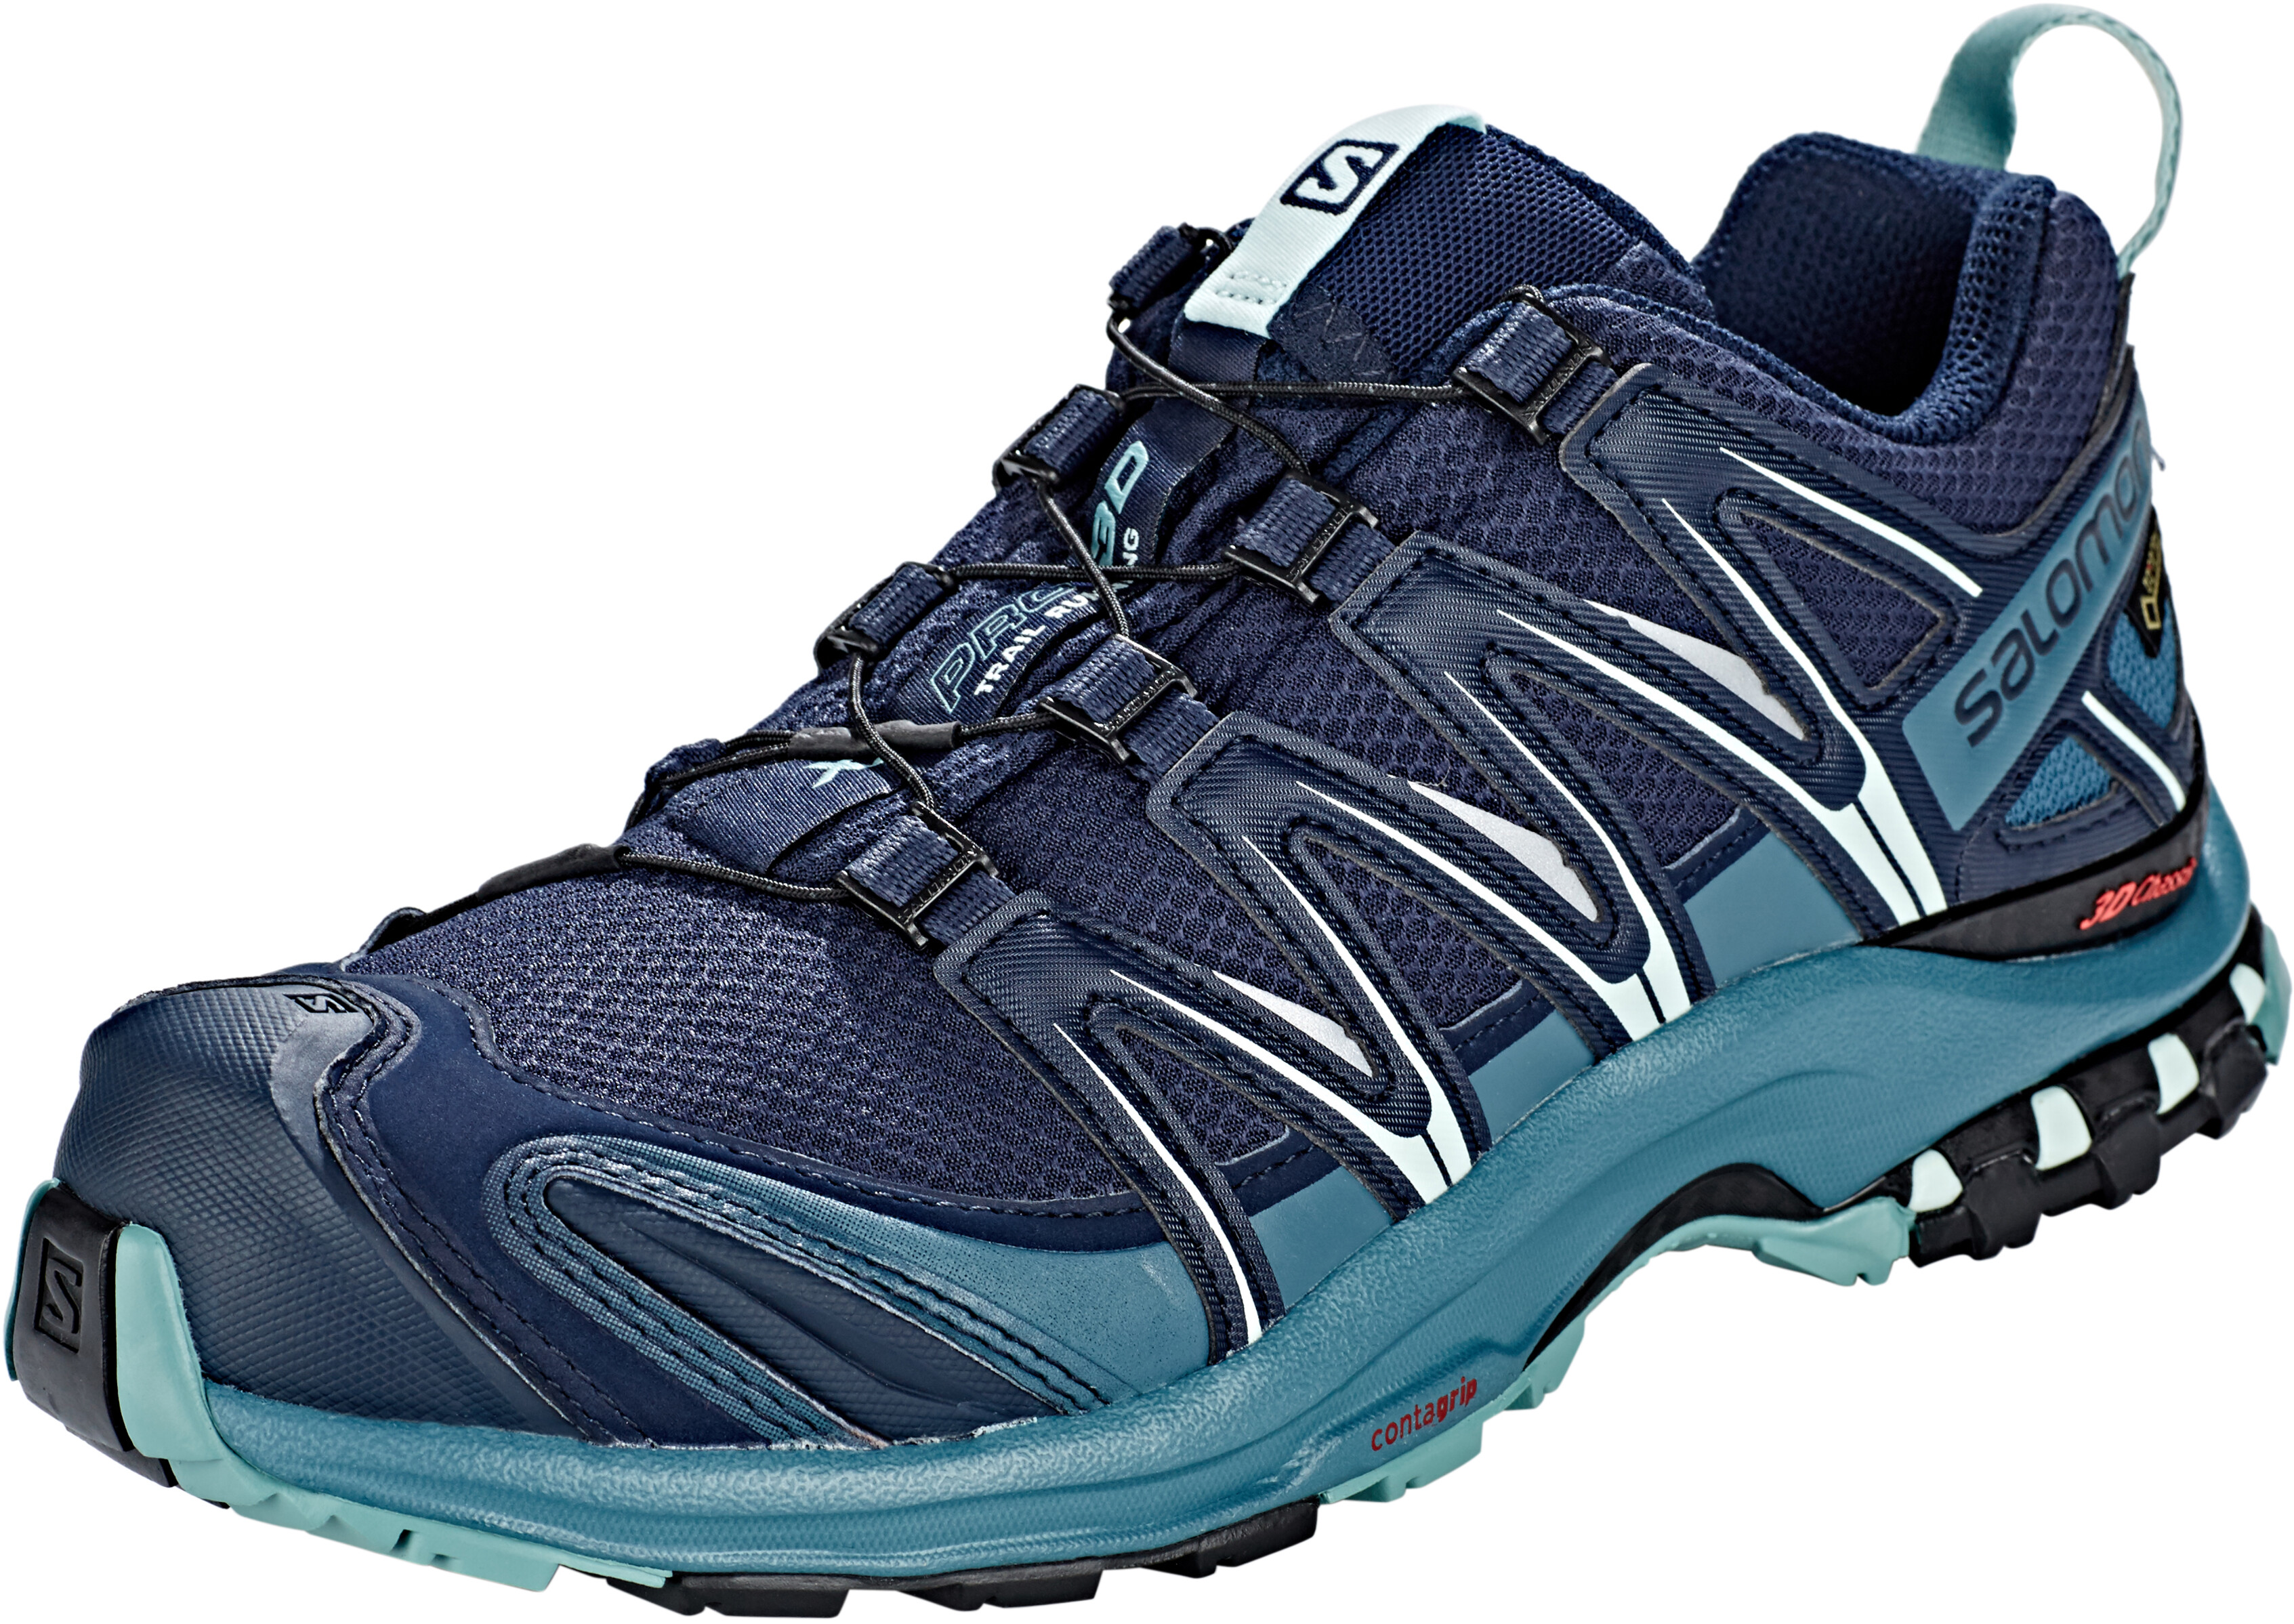 outlet store 5d8d6 9dc26 Salomon XA Pro 3D GTX Running Shoes Women blue